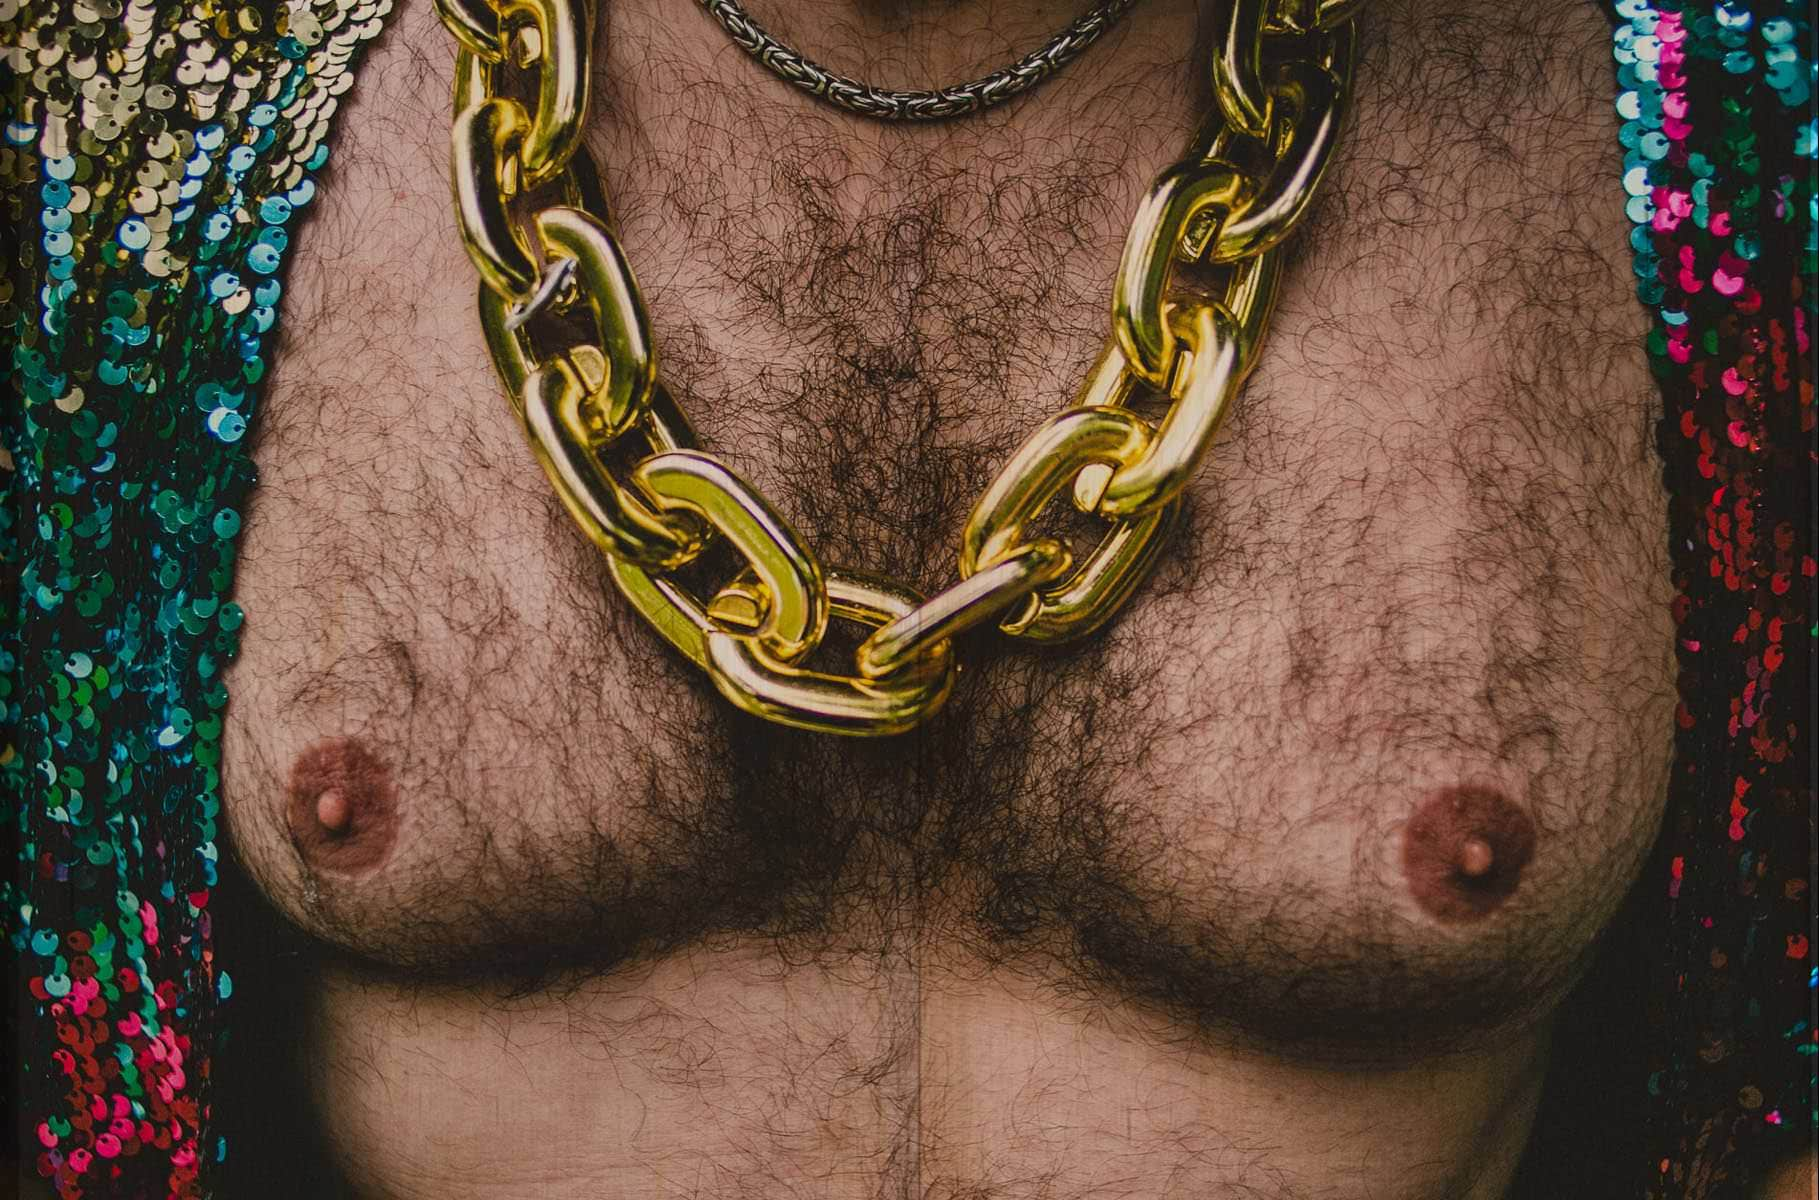 big tits with a golden chain